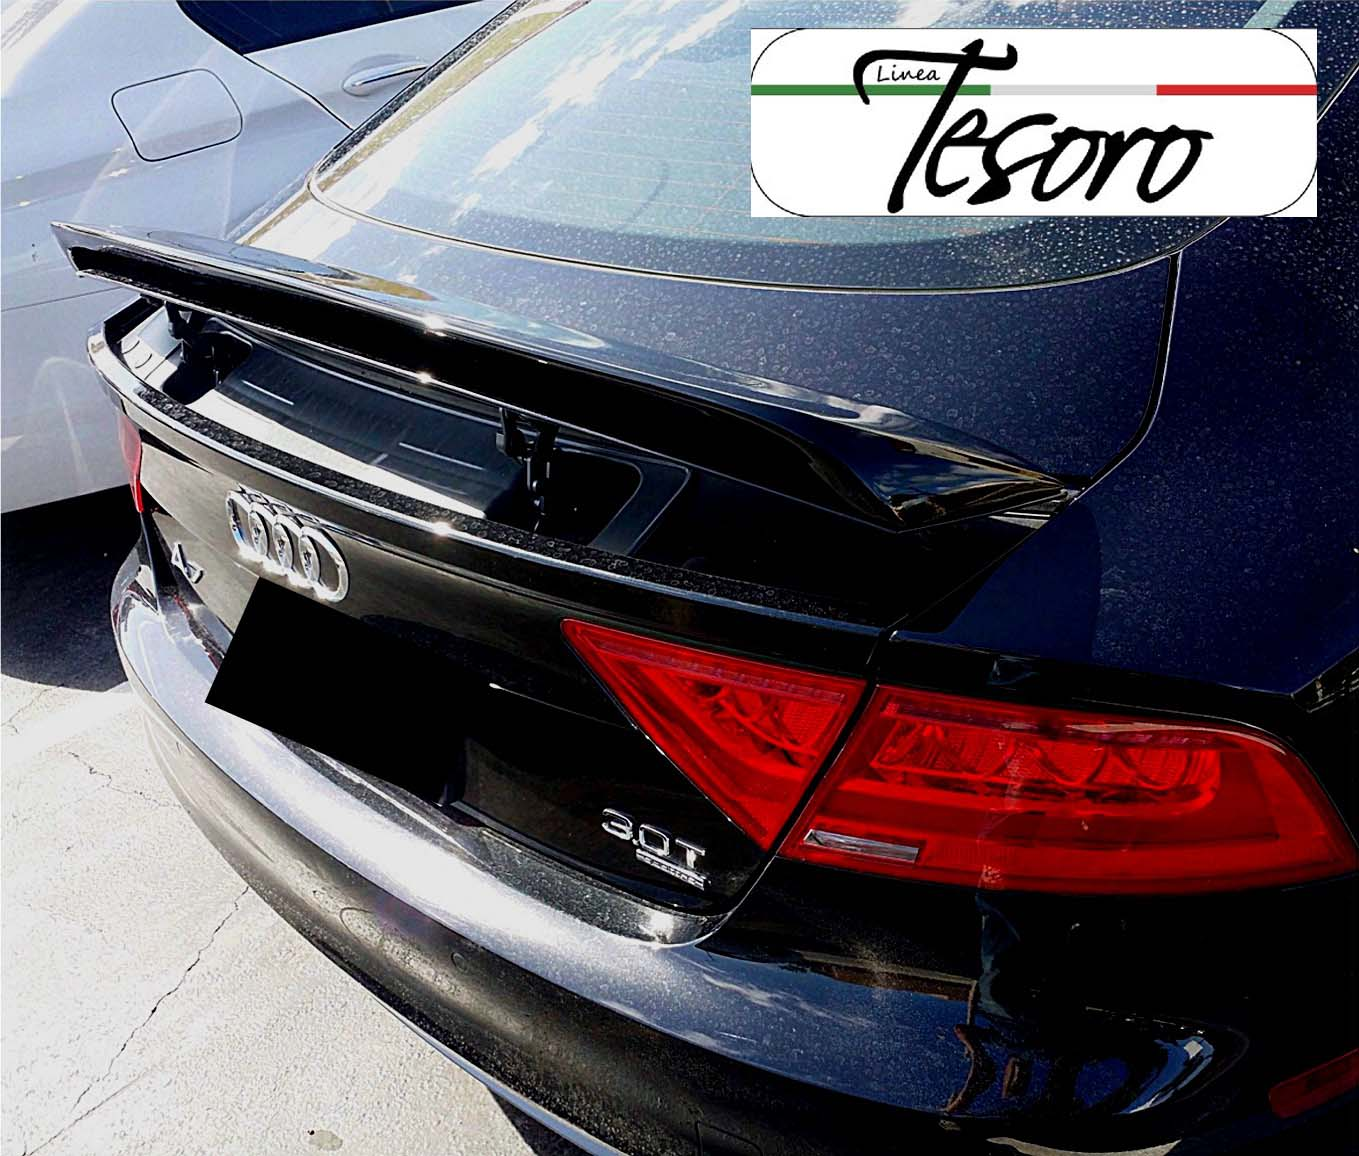 2010-2017 AUDI A7 / S7 / RS Tesoro Style Rear Trunk Wing